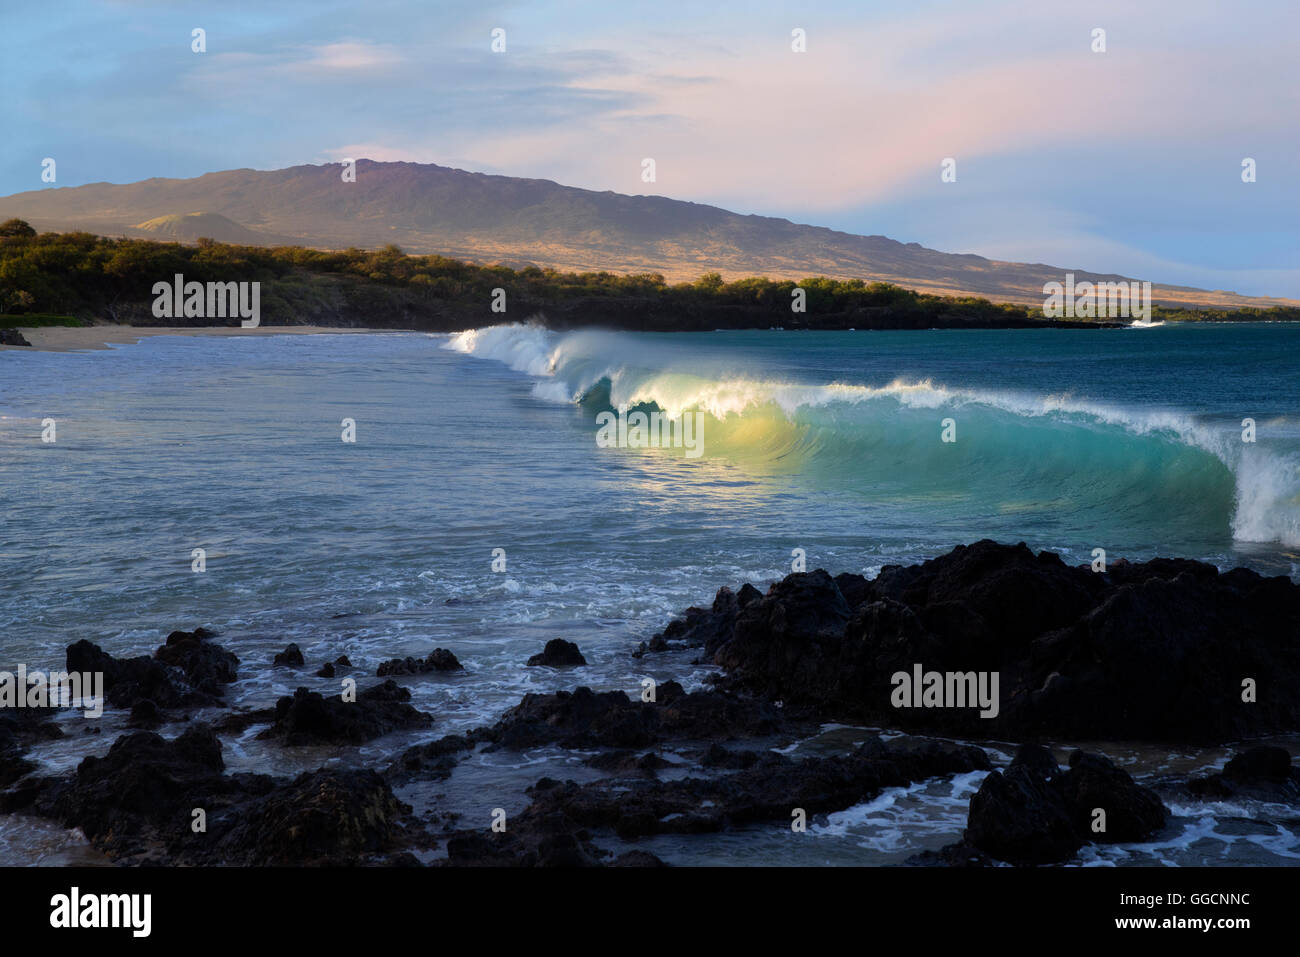 Waves And Sunrise On Hapuna Beach With Hualalai Volcano In Background Hawaii Island